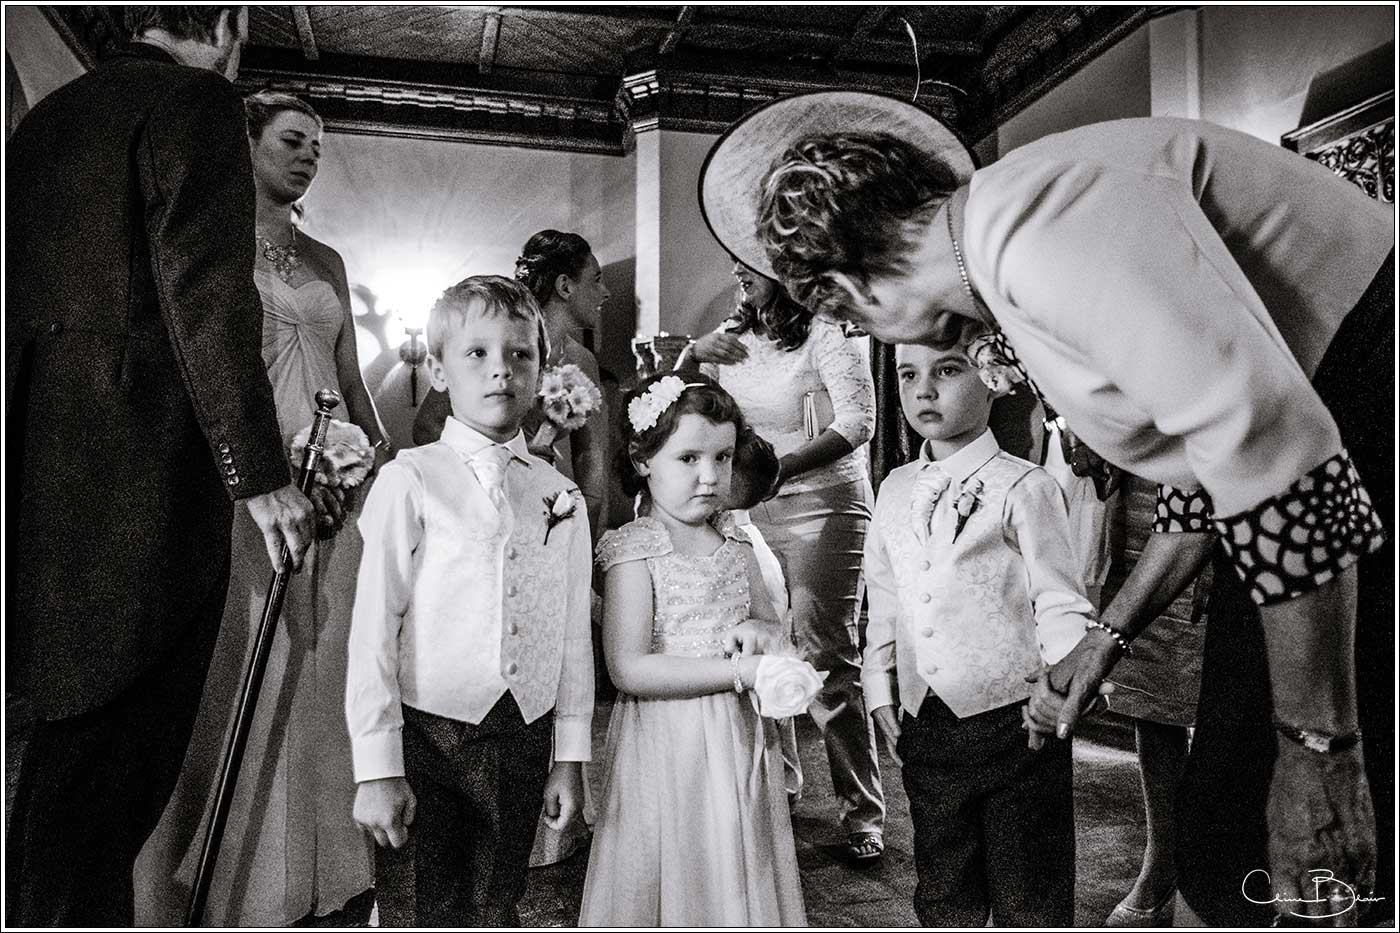 Coombe Abbey wedding photography showing pageboys and flowergirls getting final instructions before entering wedding ceremony in The Abbeygate